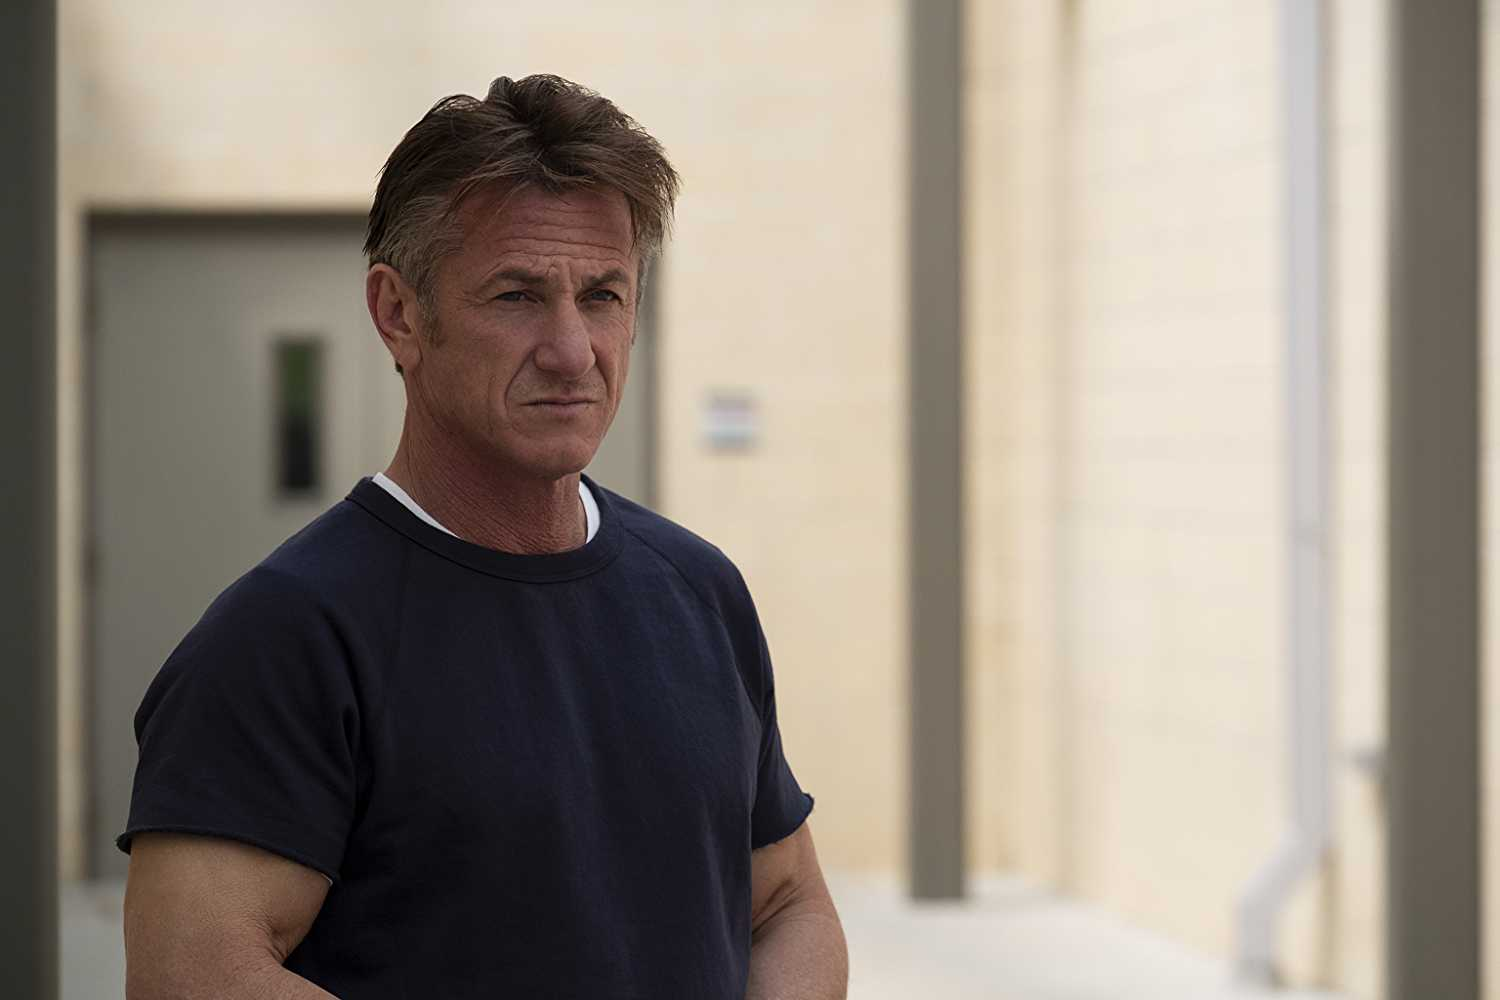 Sean Penn as Captain Tom Hagerty in Hulu's Mars mission drama 'The First'. (Image Source: IMDB/The First)